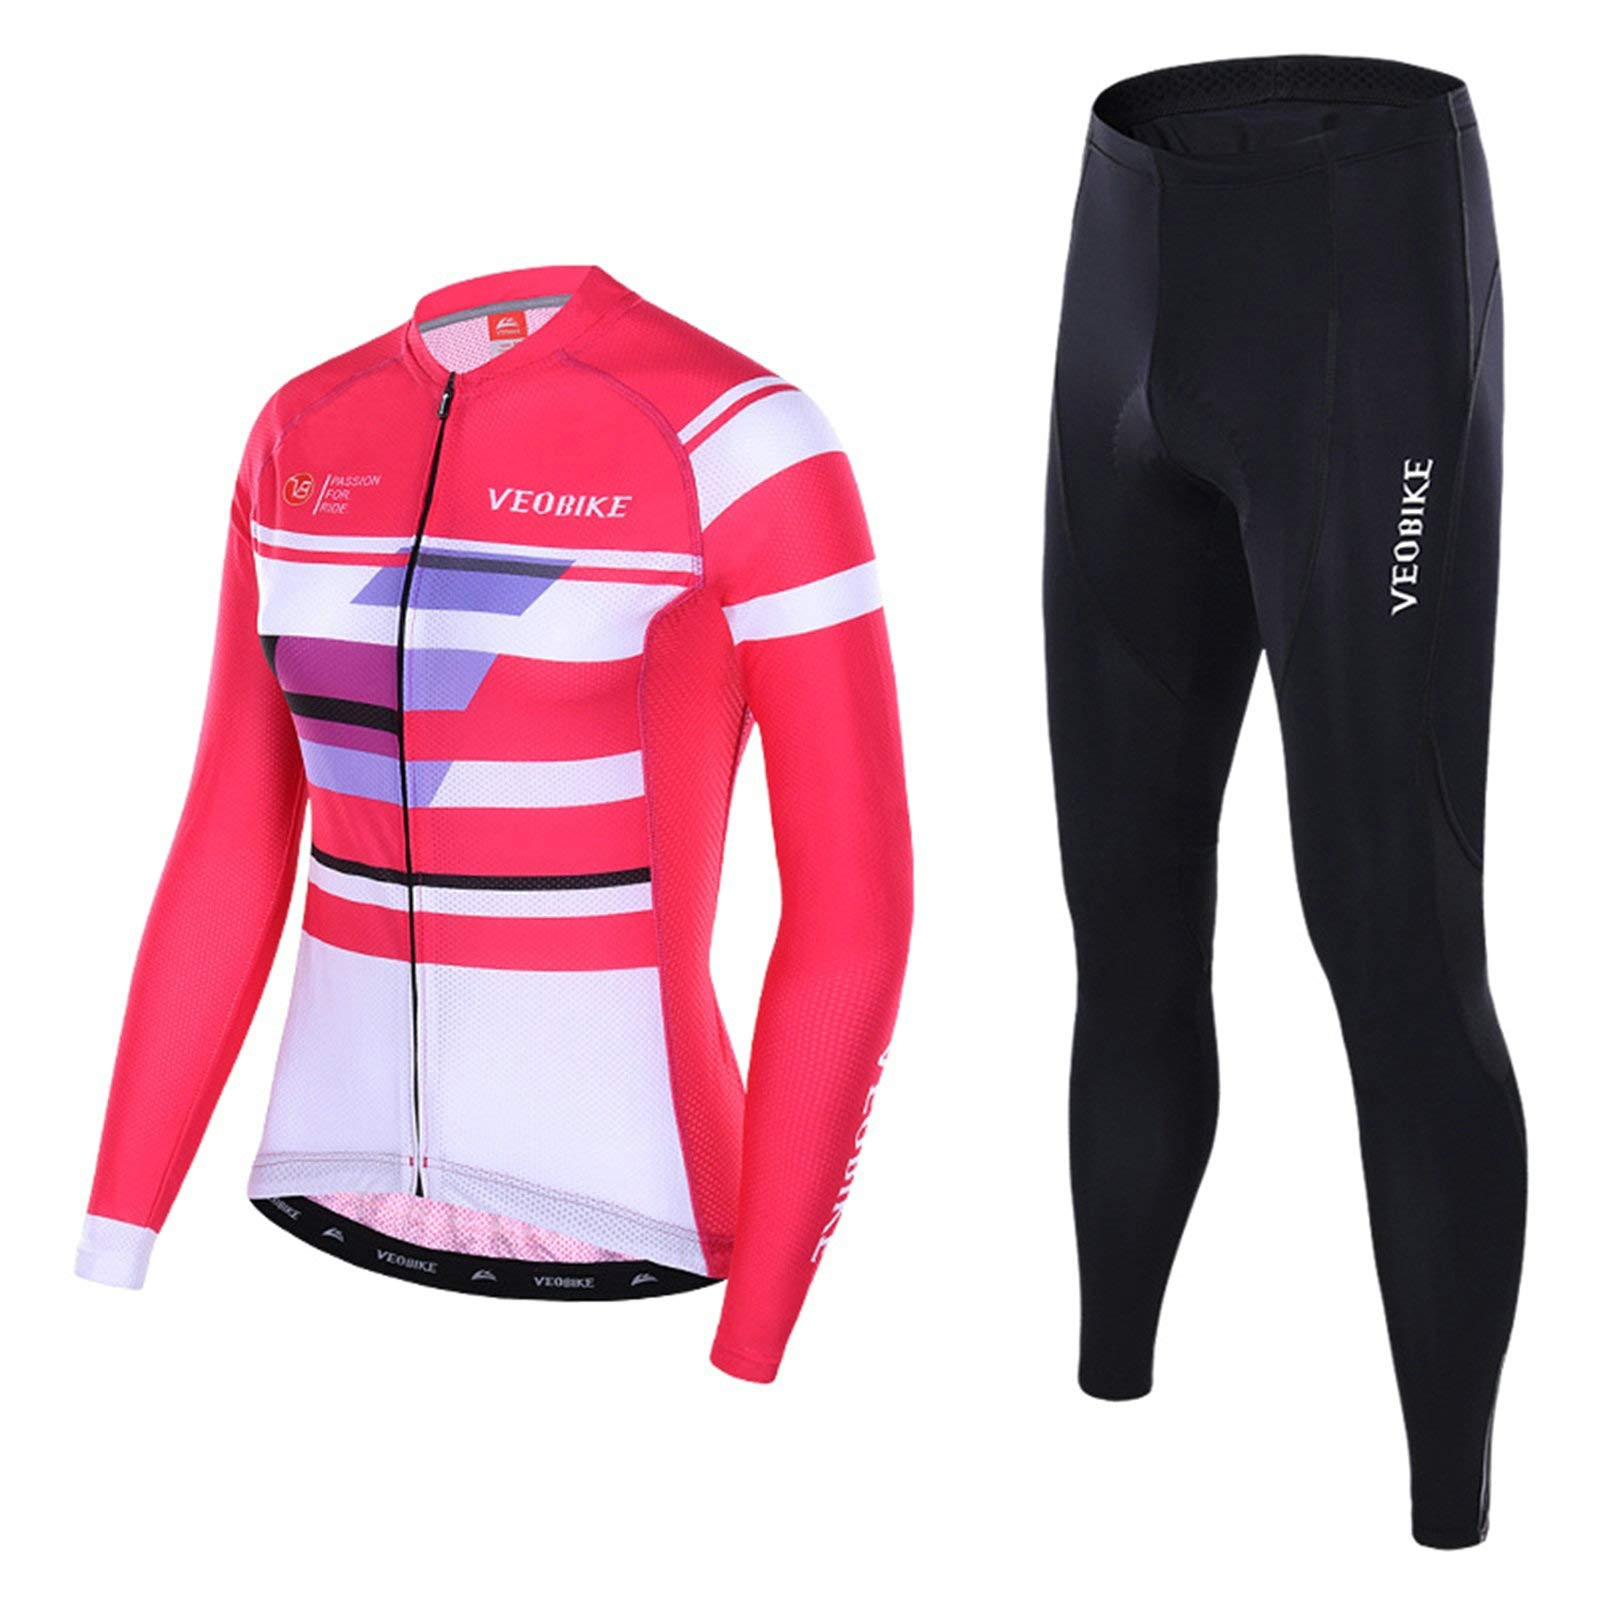 Aooaz Women's Cycling Clothes Full Sleeve Riding Wear Long Sleeve Shirt Tights Biking Outfit Pink Size S